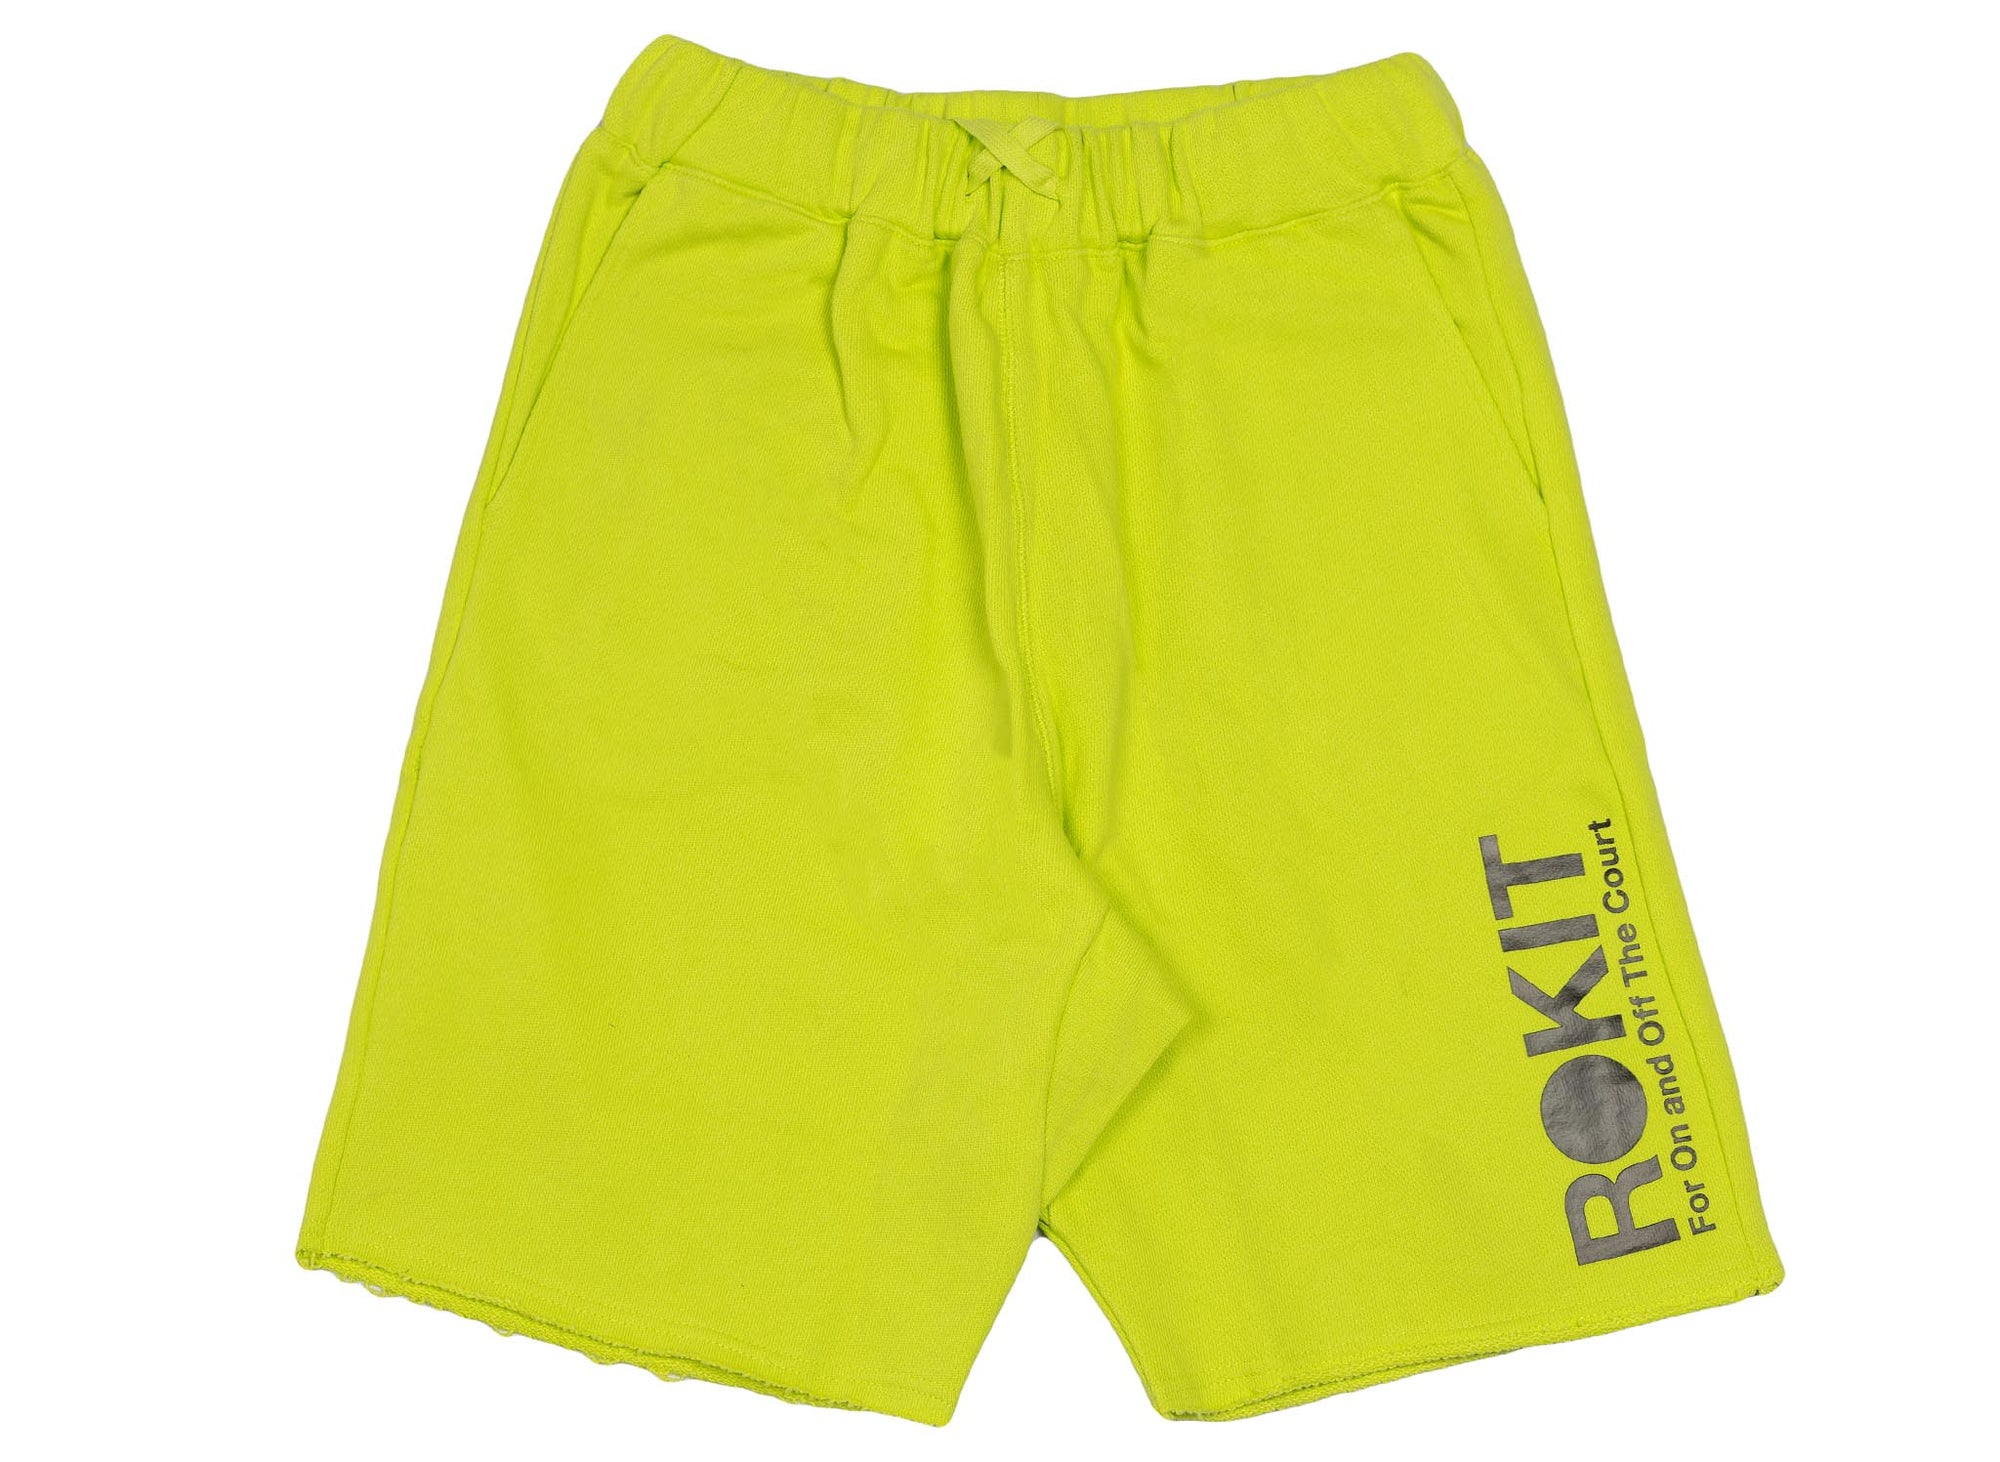 ROKIT the diver fleece shorts